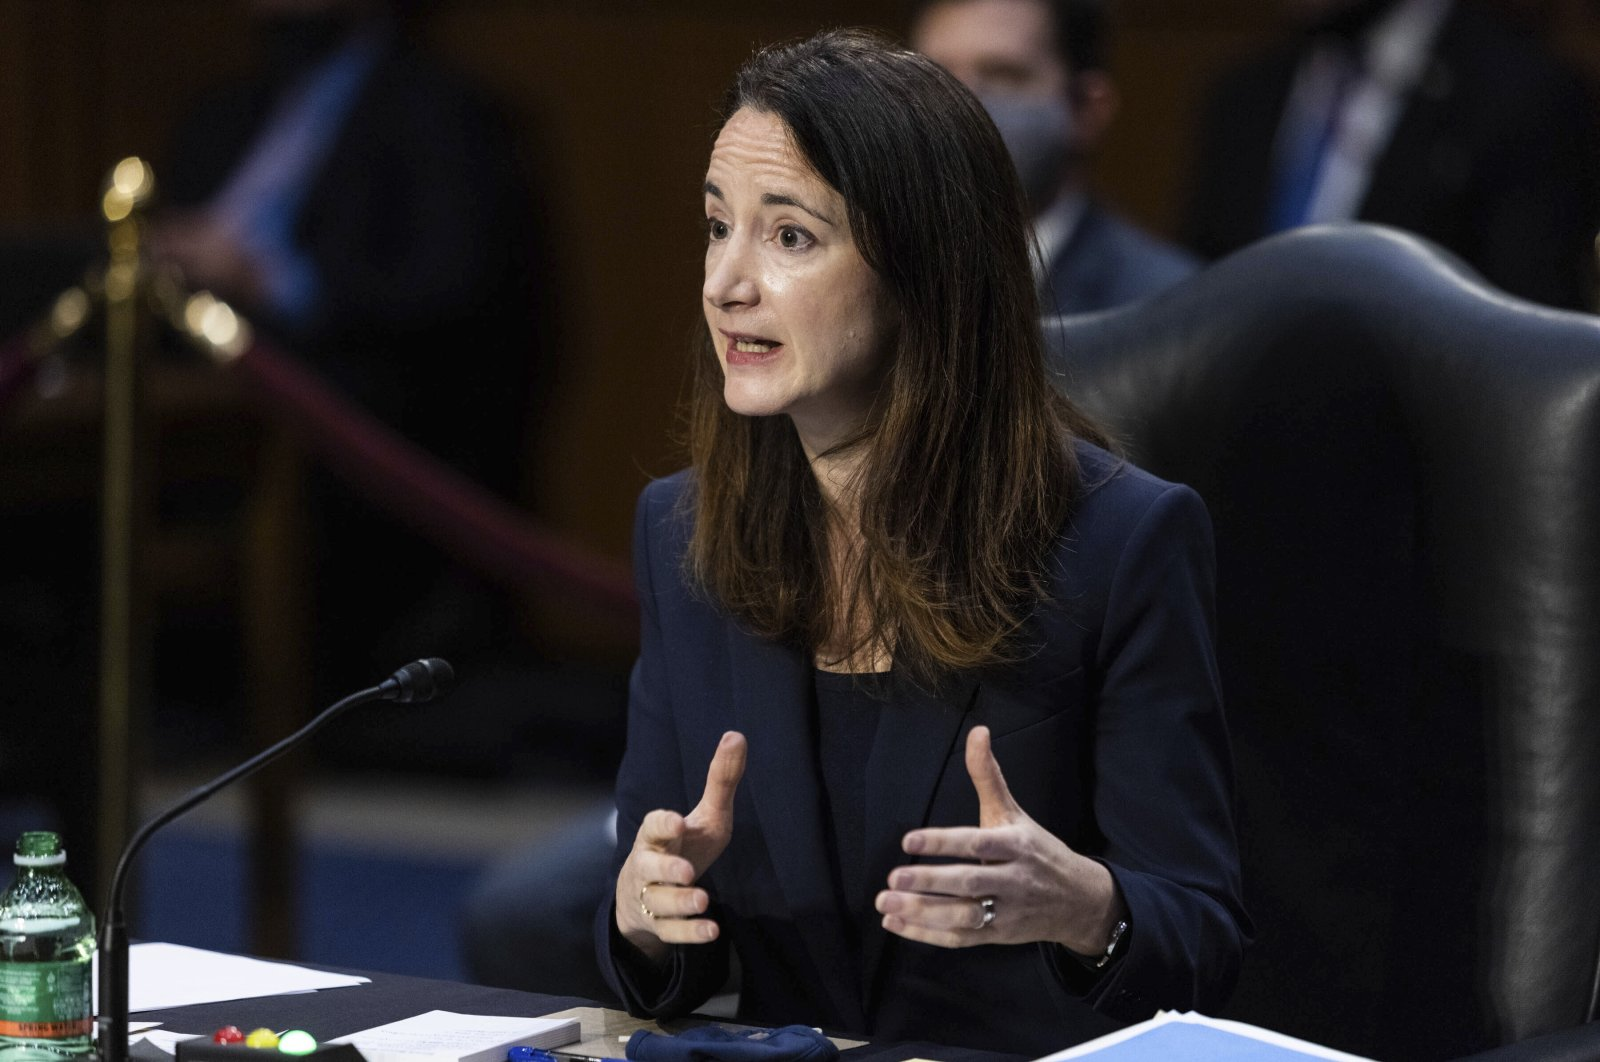 Director Avril Haines of the Office of the Director of National Intelligence (ODNI) testifies during a Senate Select Committee on Intelligence hearing about worldwide threats, on Capitol Hill in Washington, D.C., U.S., Wednesday, April 14, 2021. (AP Photo)